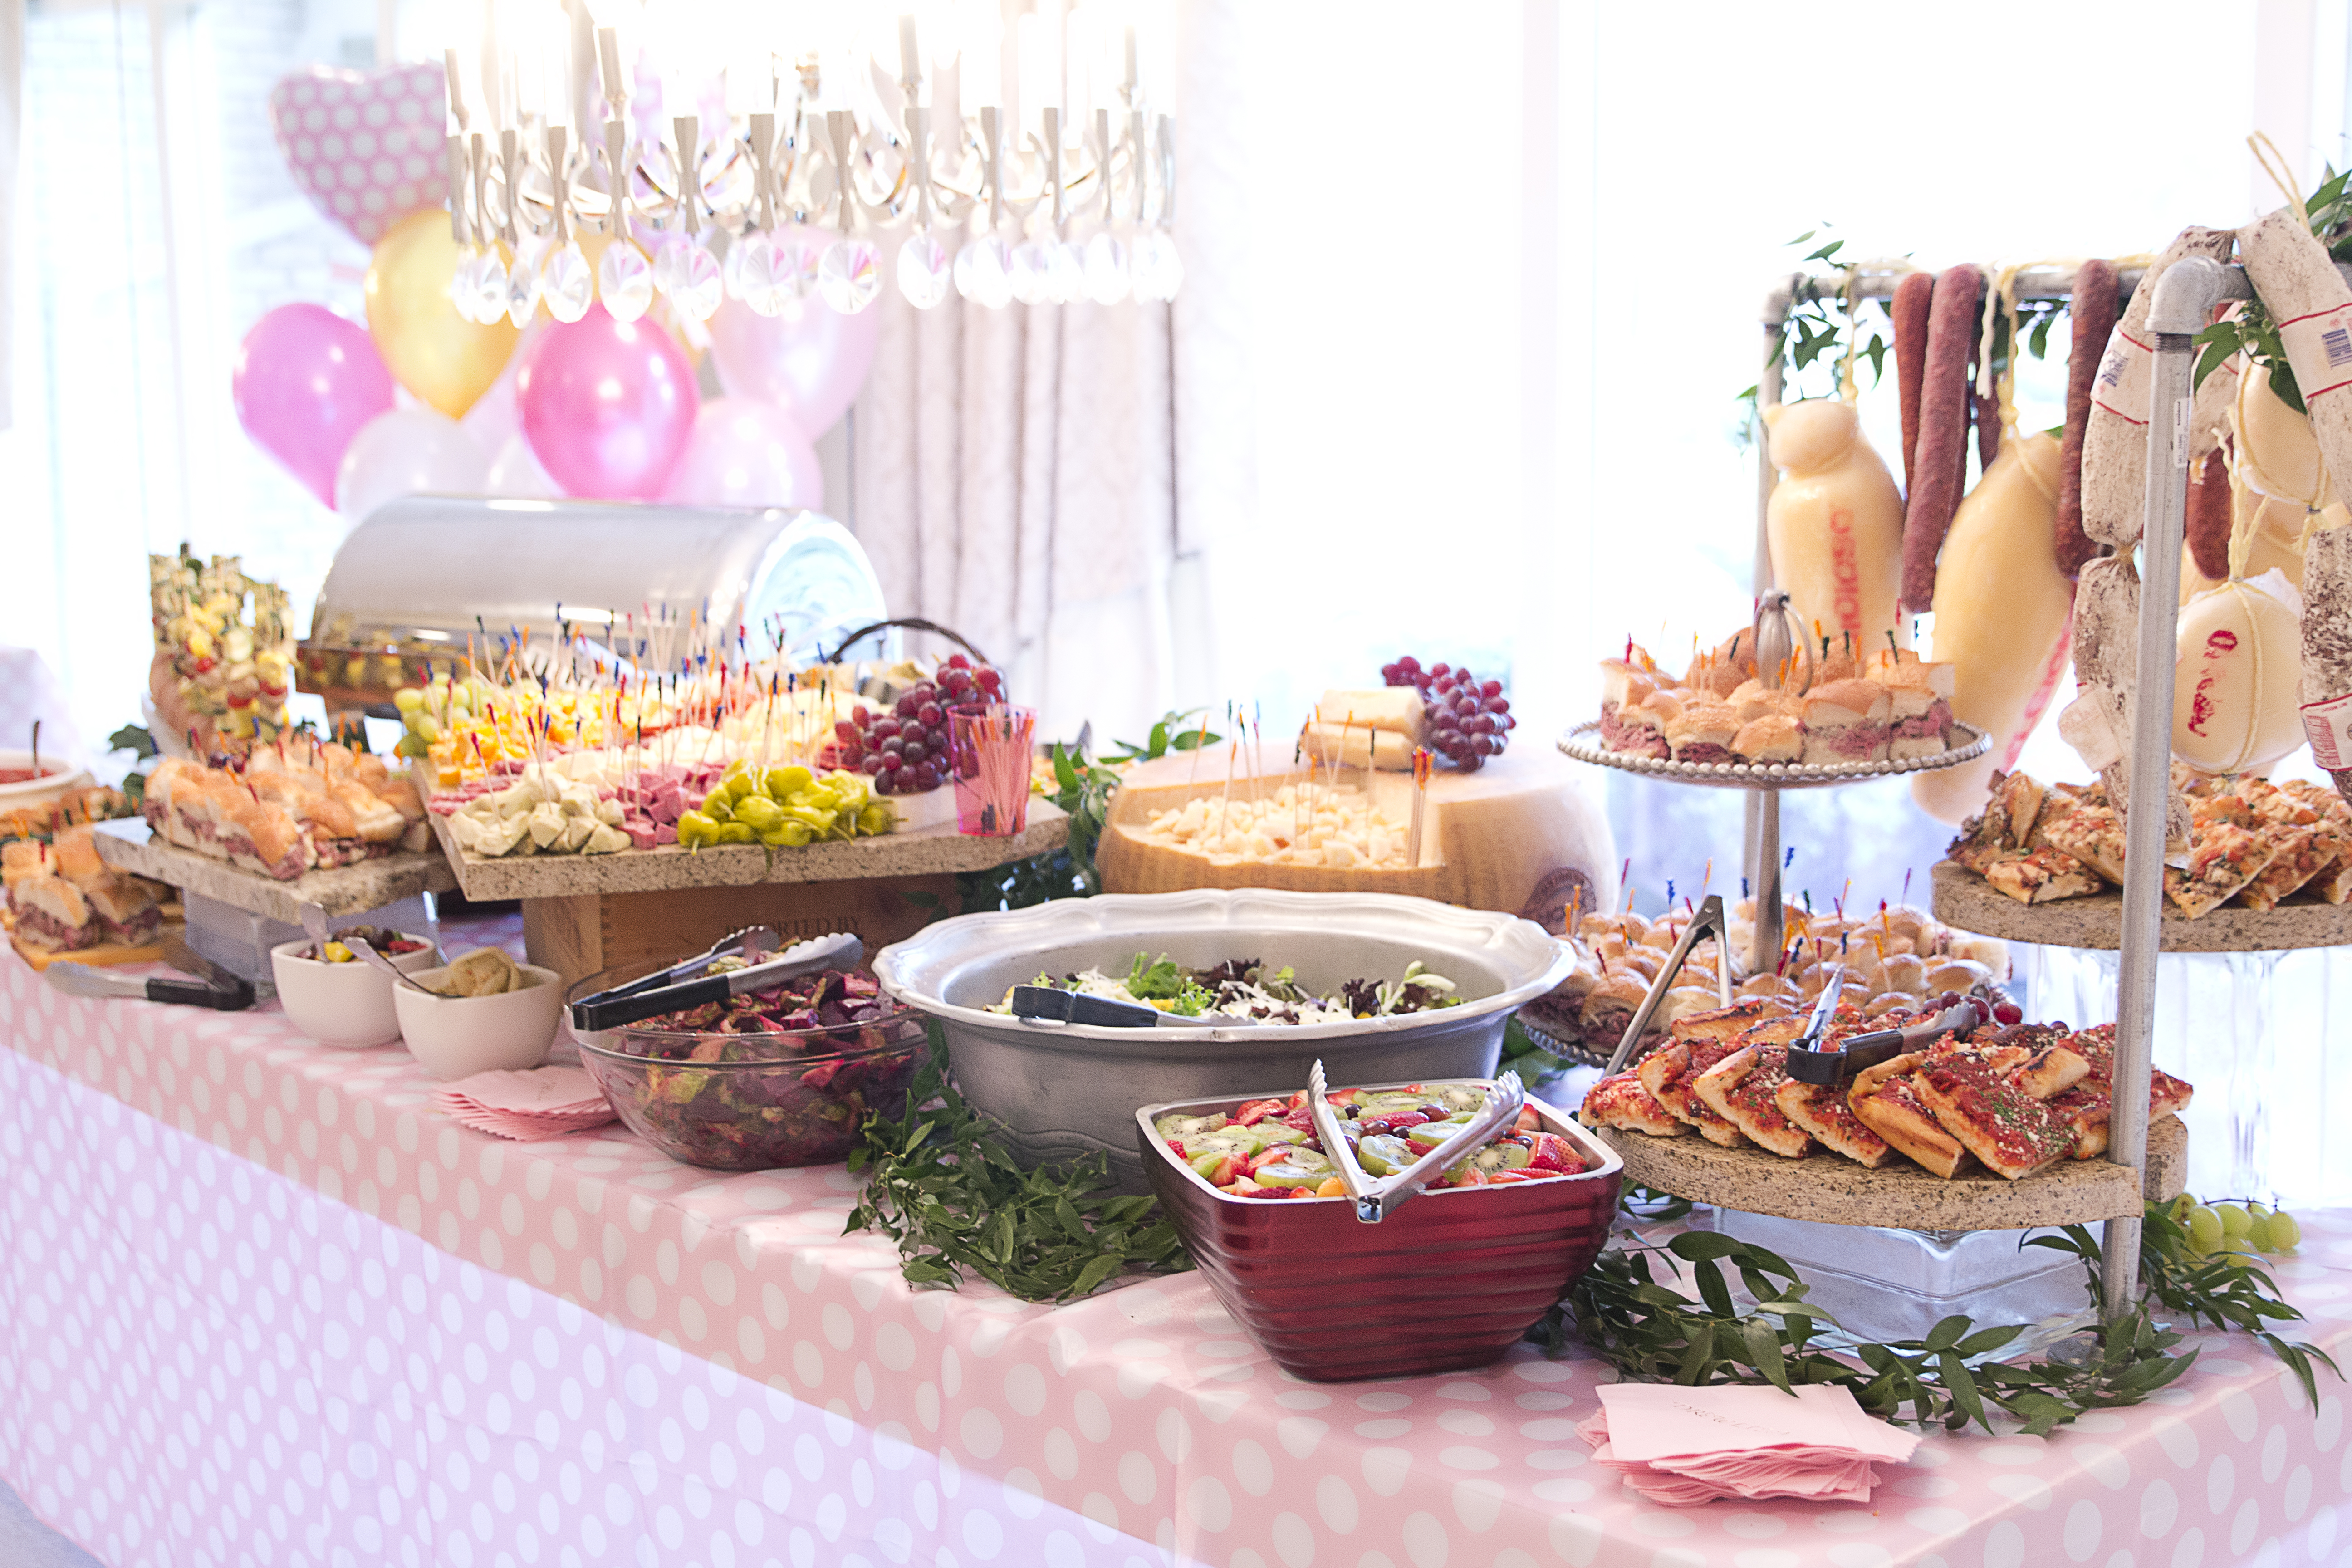 The Perfect Party Spread